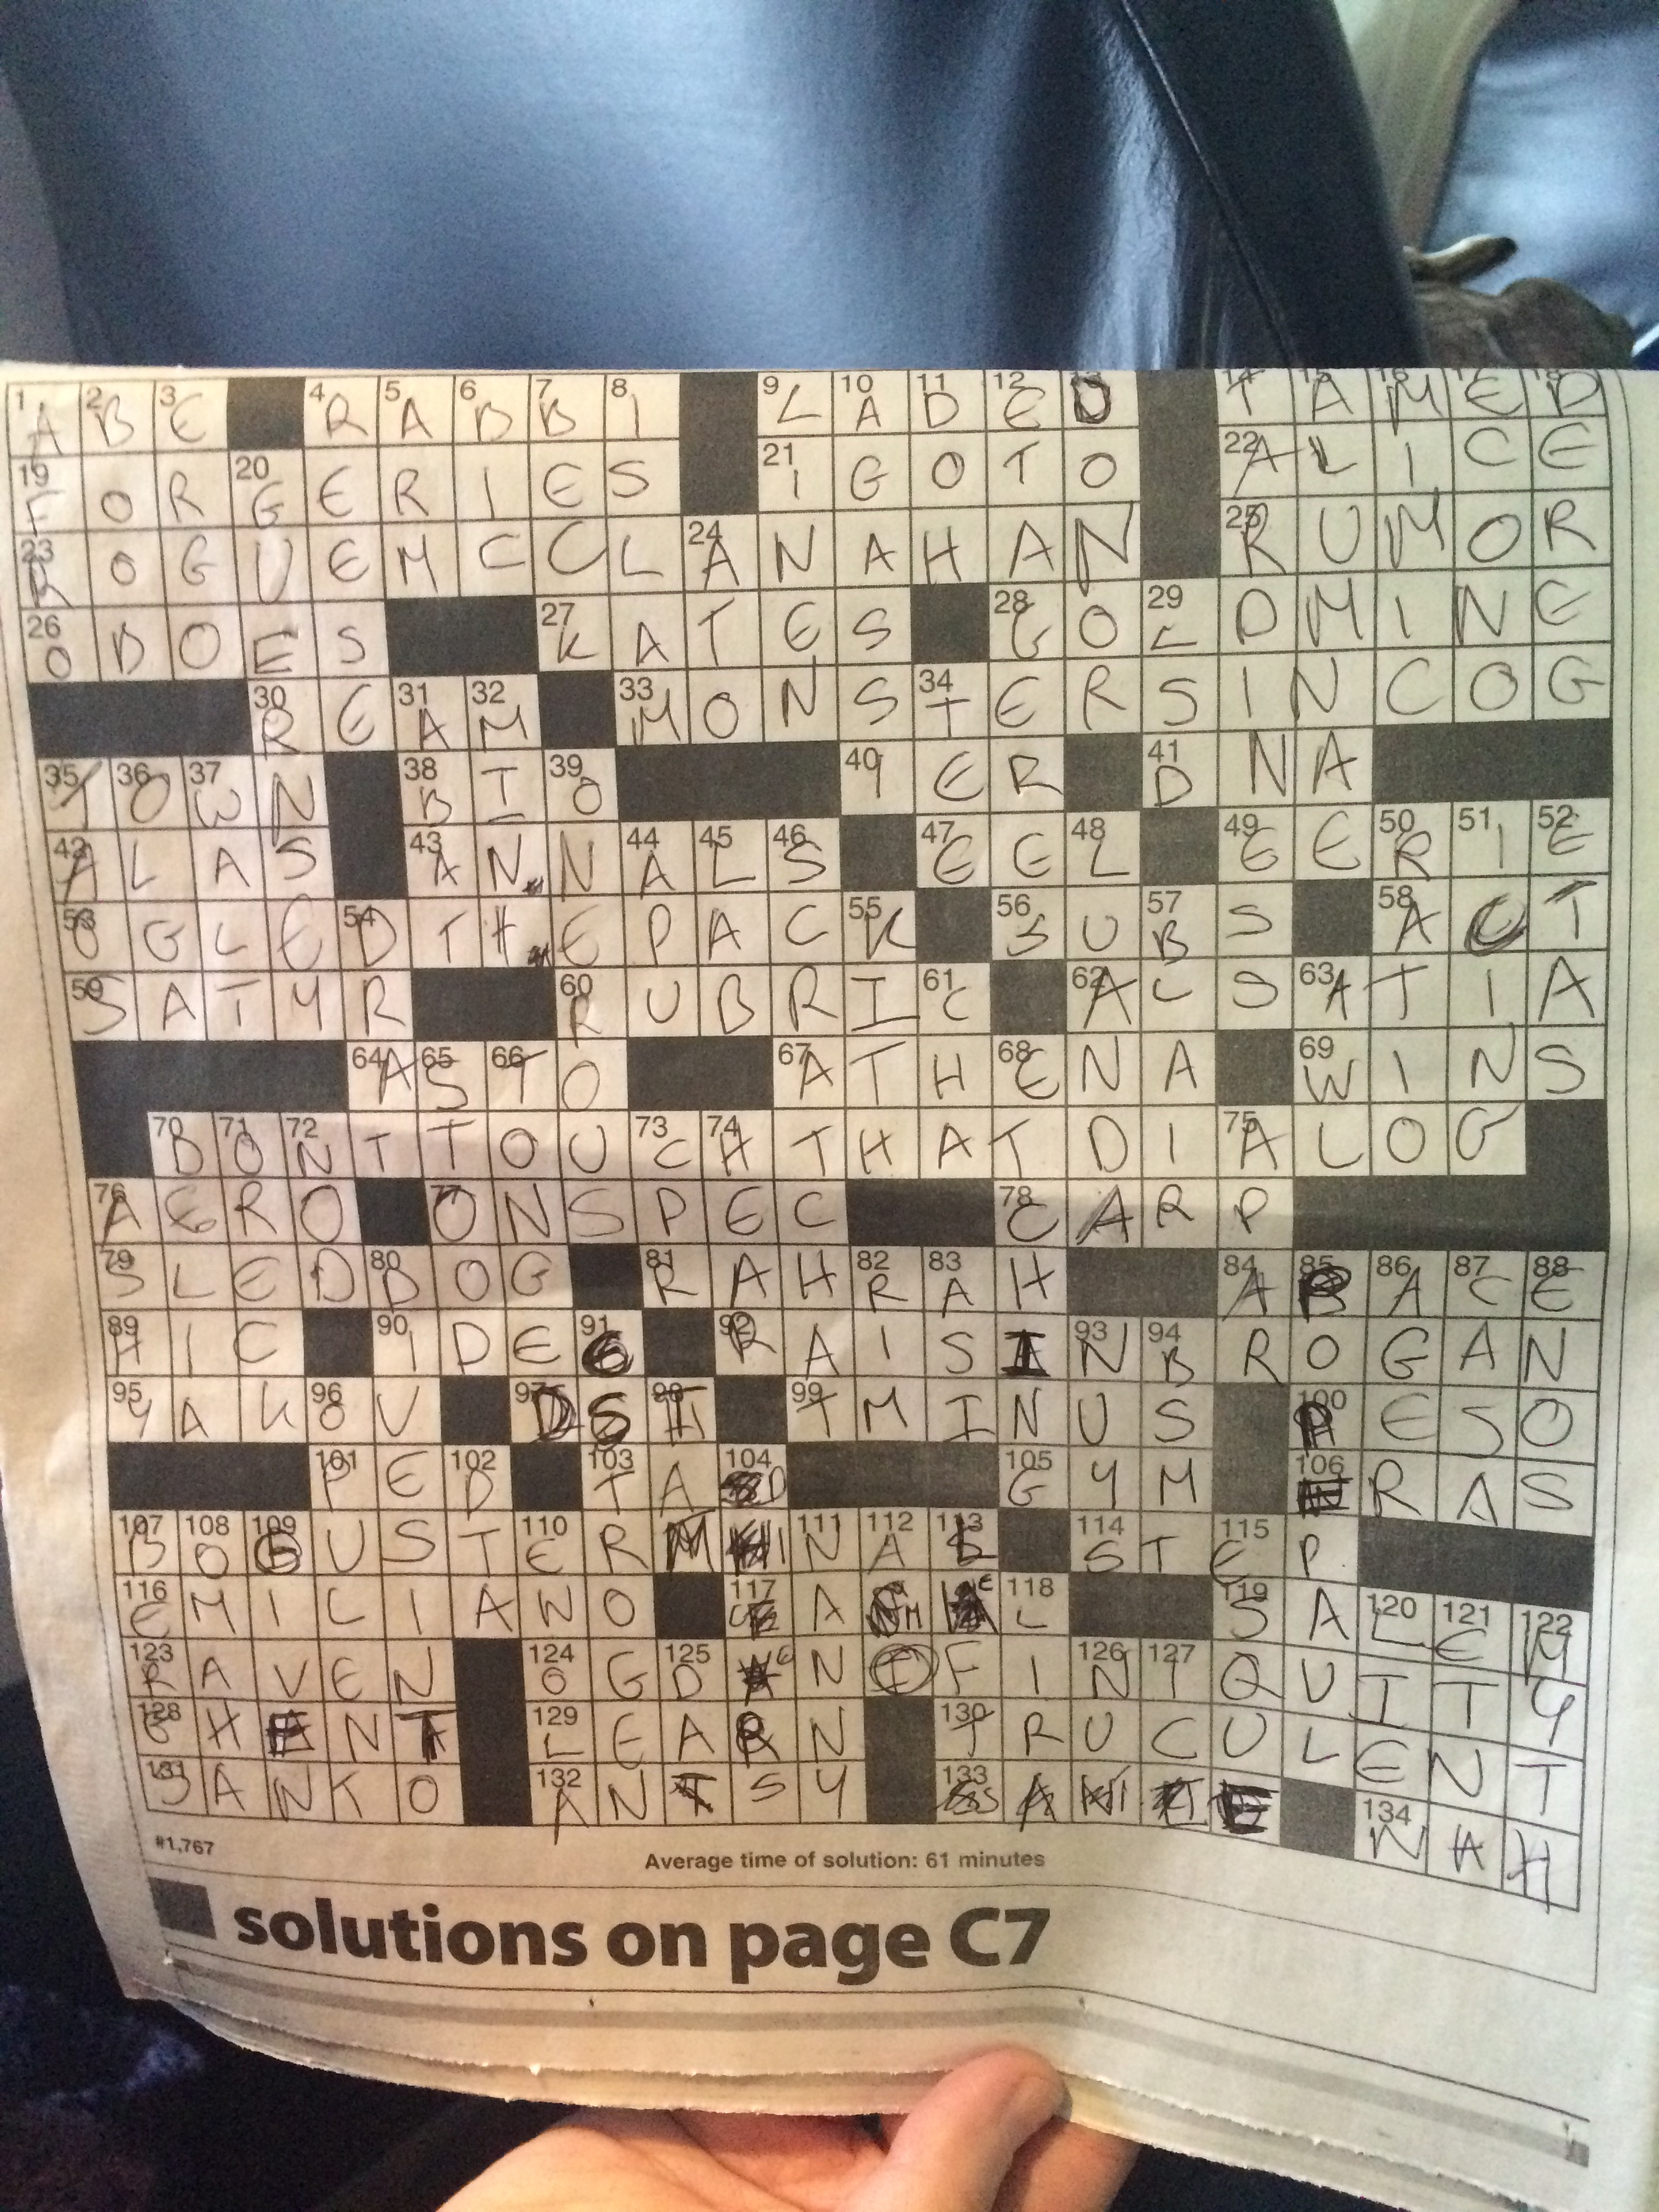 Guest crossword